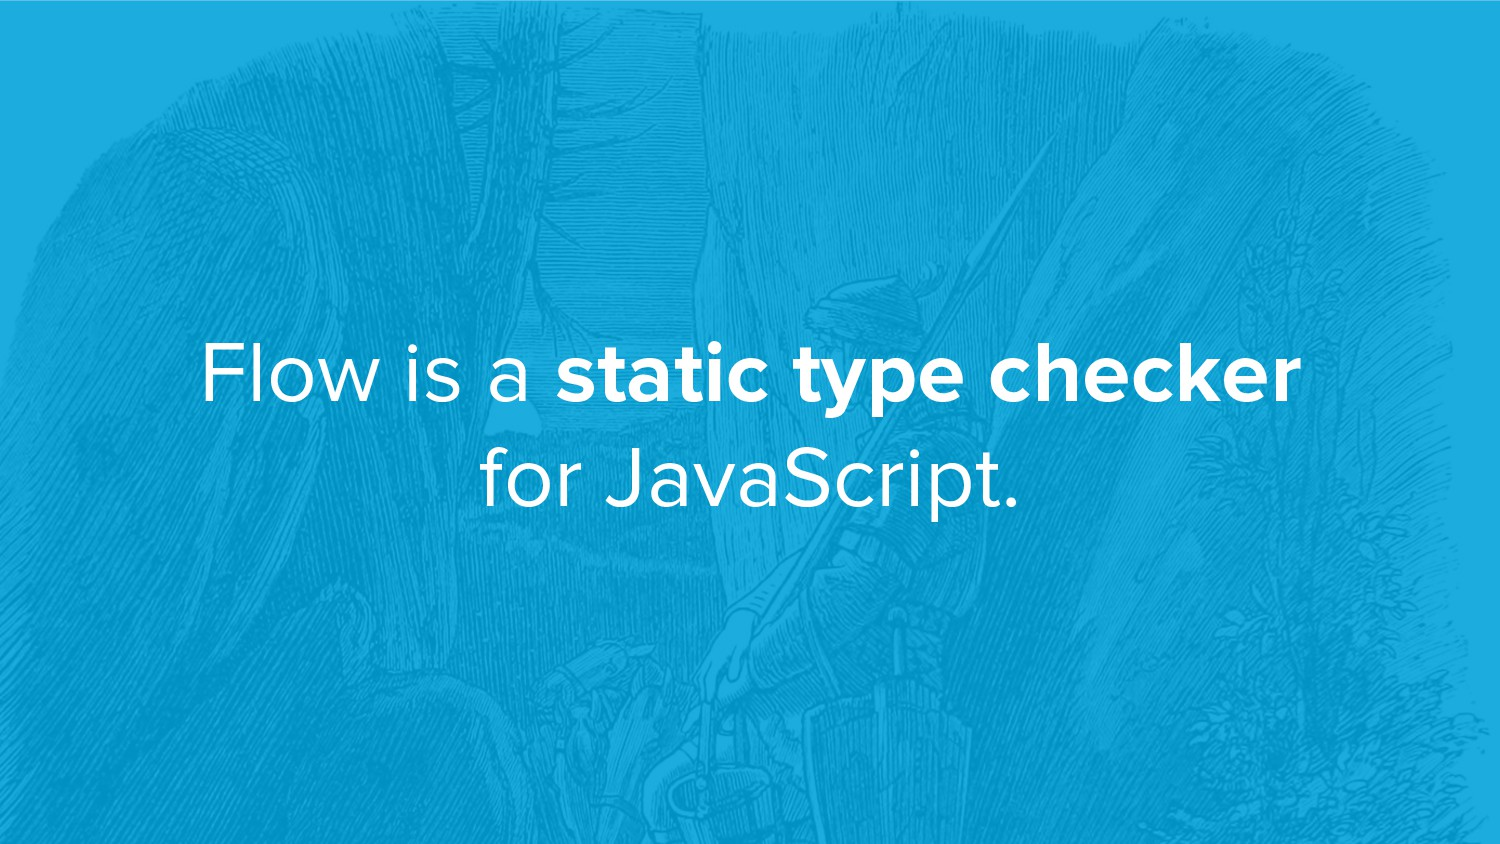 Flow is a static type checker for JavaScript.